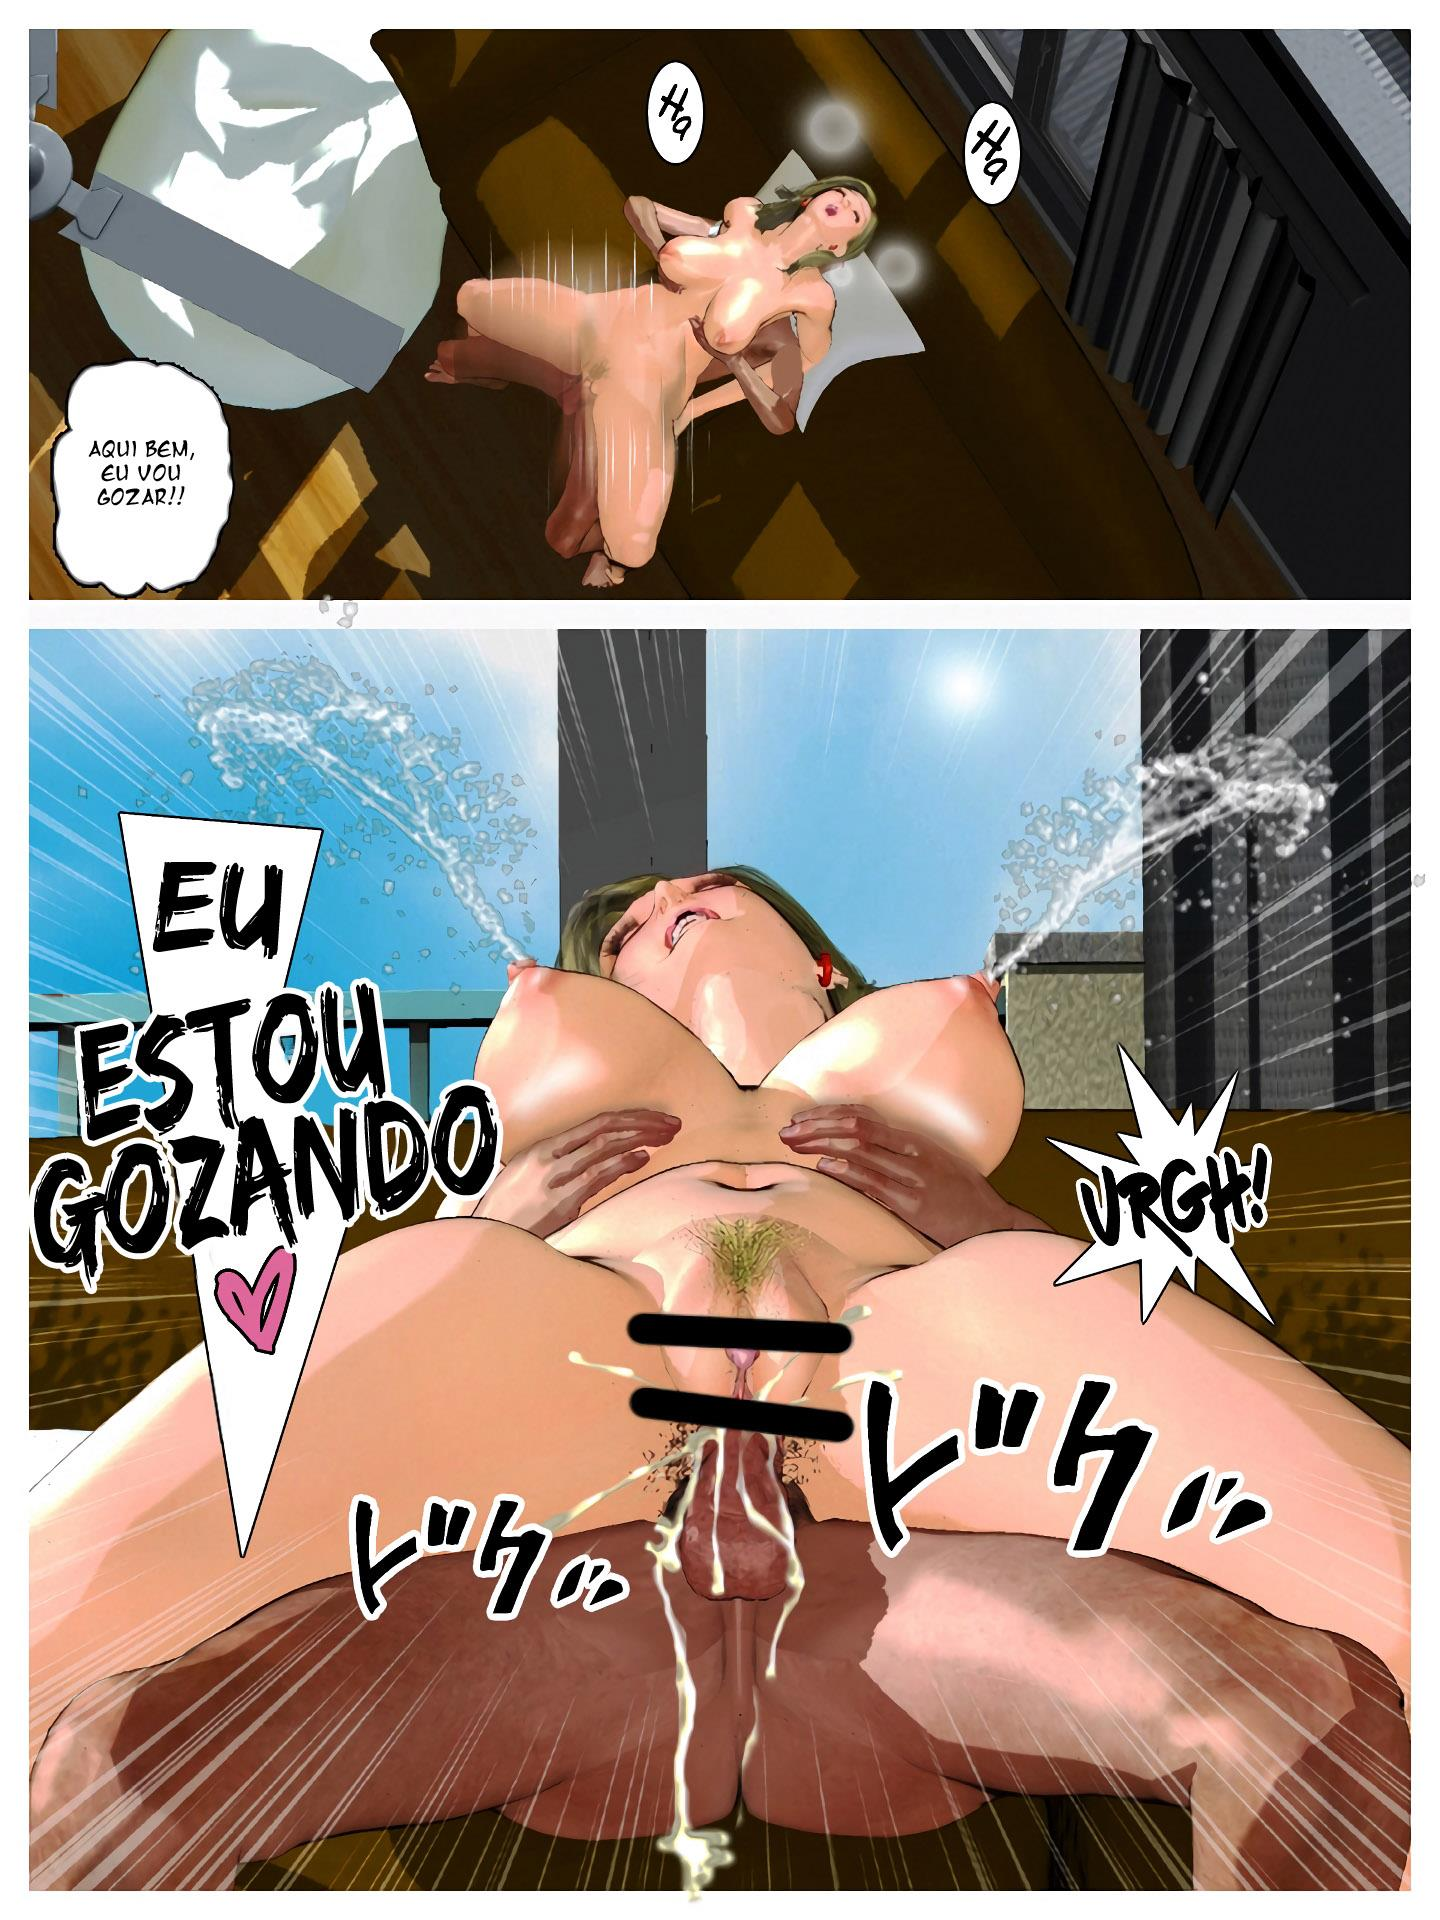 Androide 18 a boneca sexual